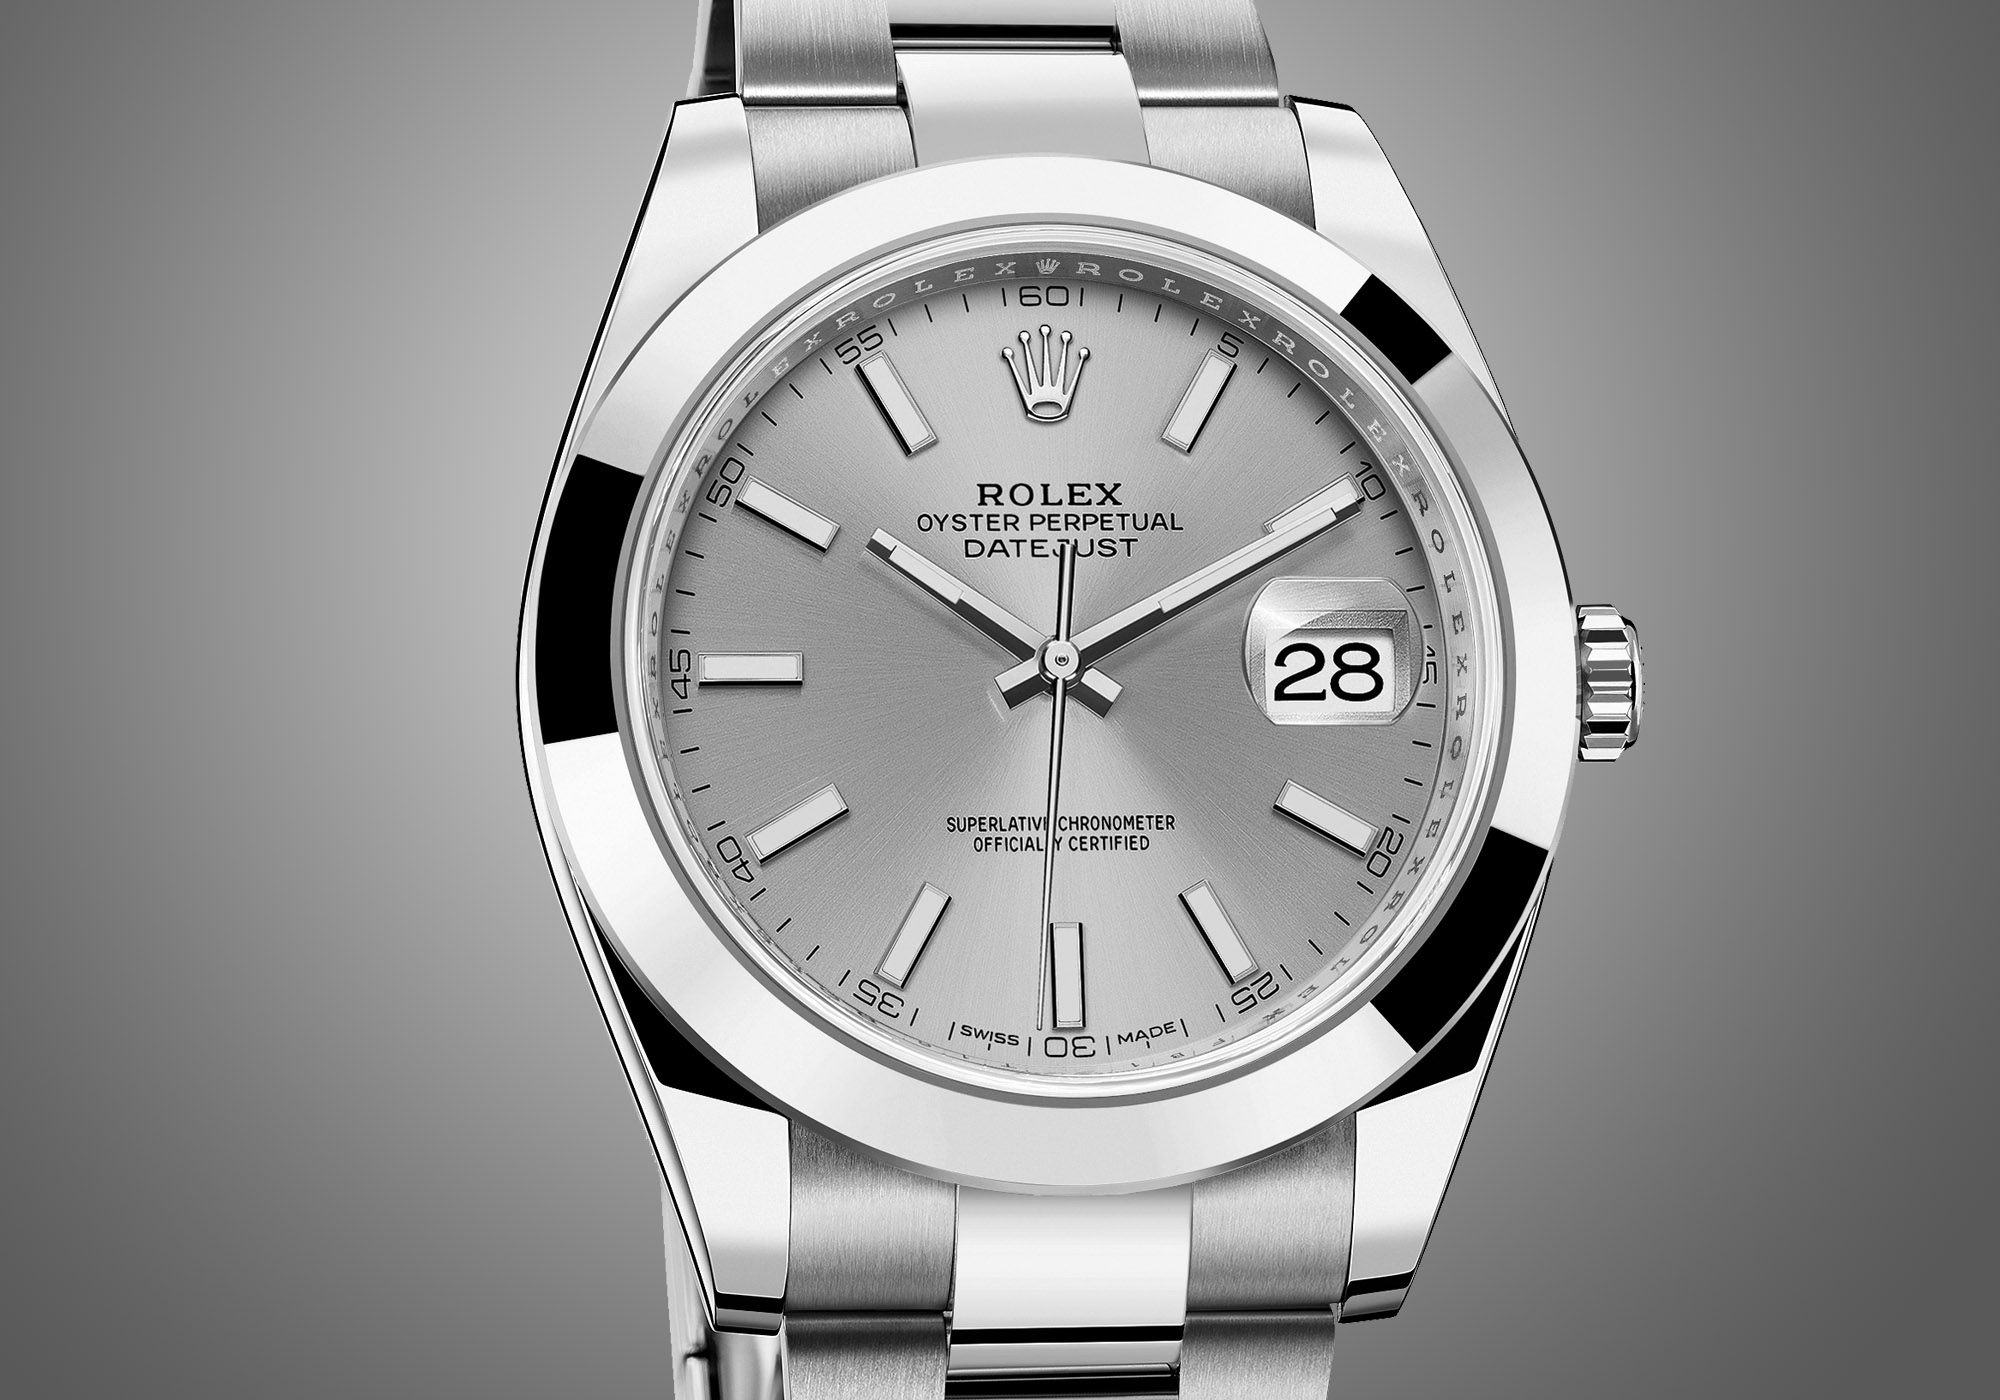 Rolex Datejust 41 Steel - Rolex Baselworld 2017 - Rolex Predictions 2017